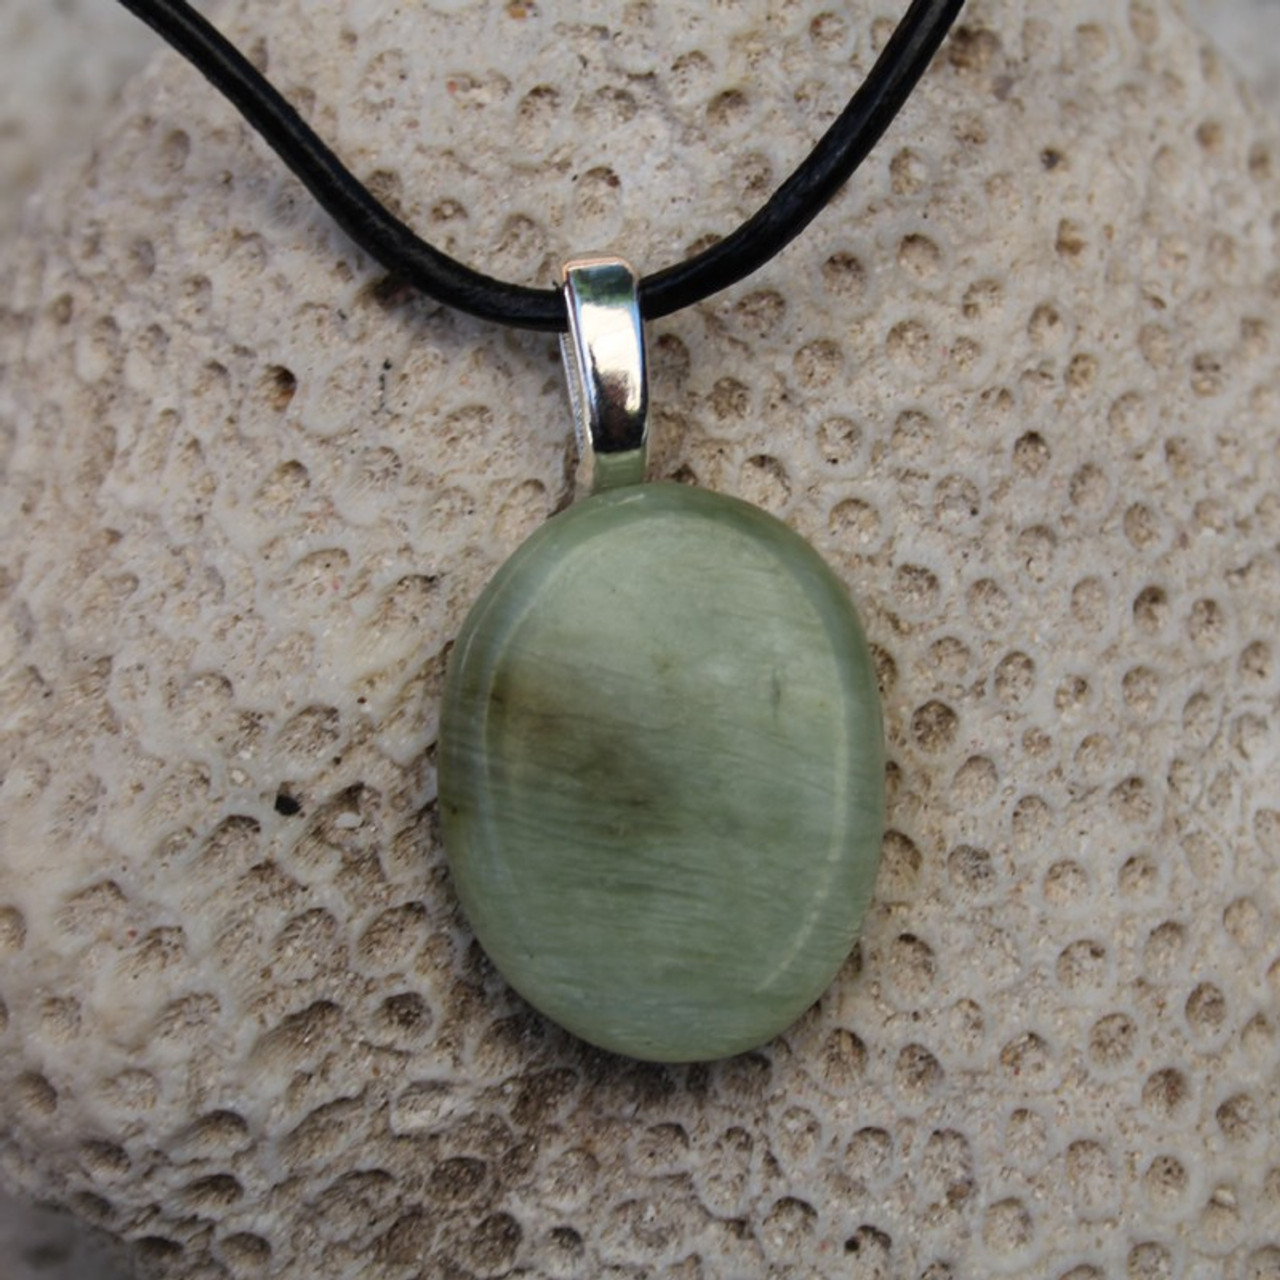 Green Jade Palm Stone on a Leather Thong Necklace - Made to Order